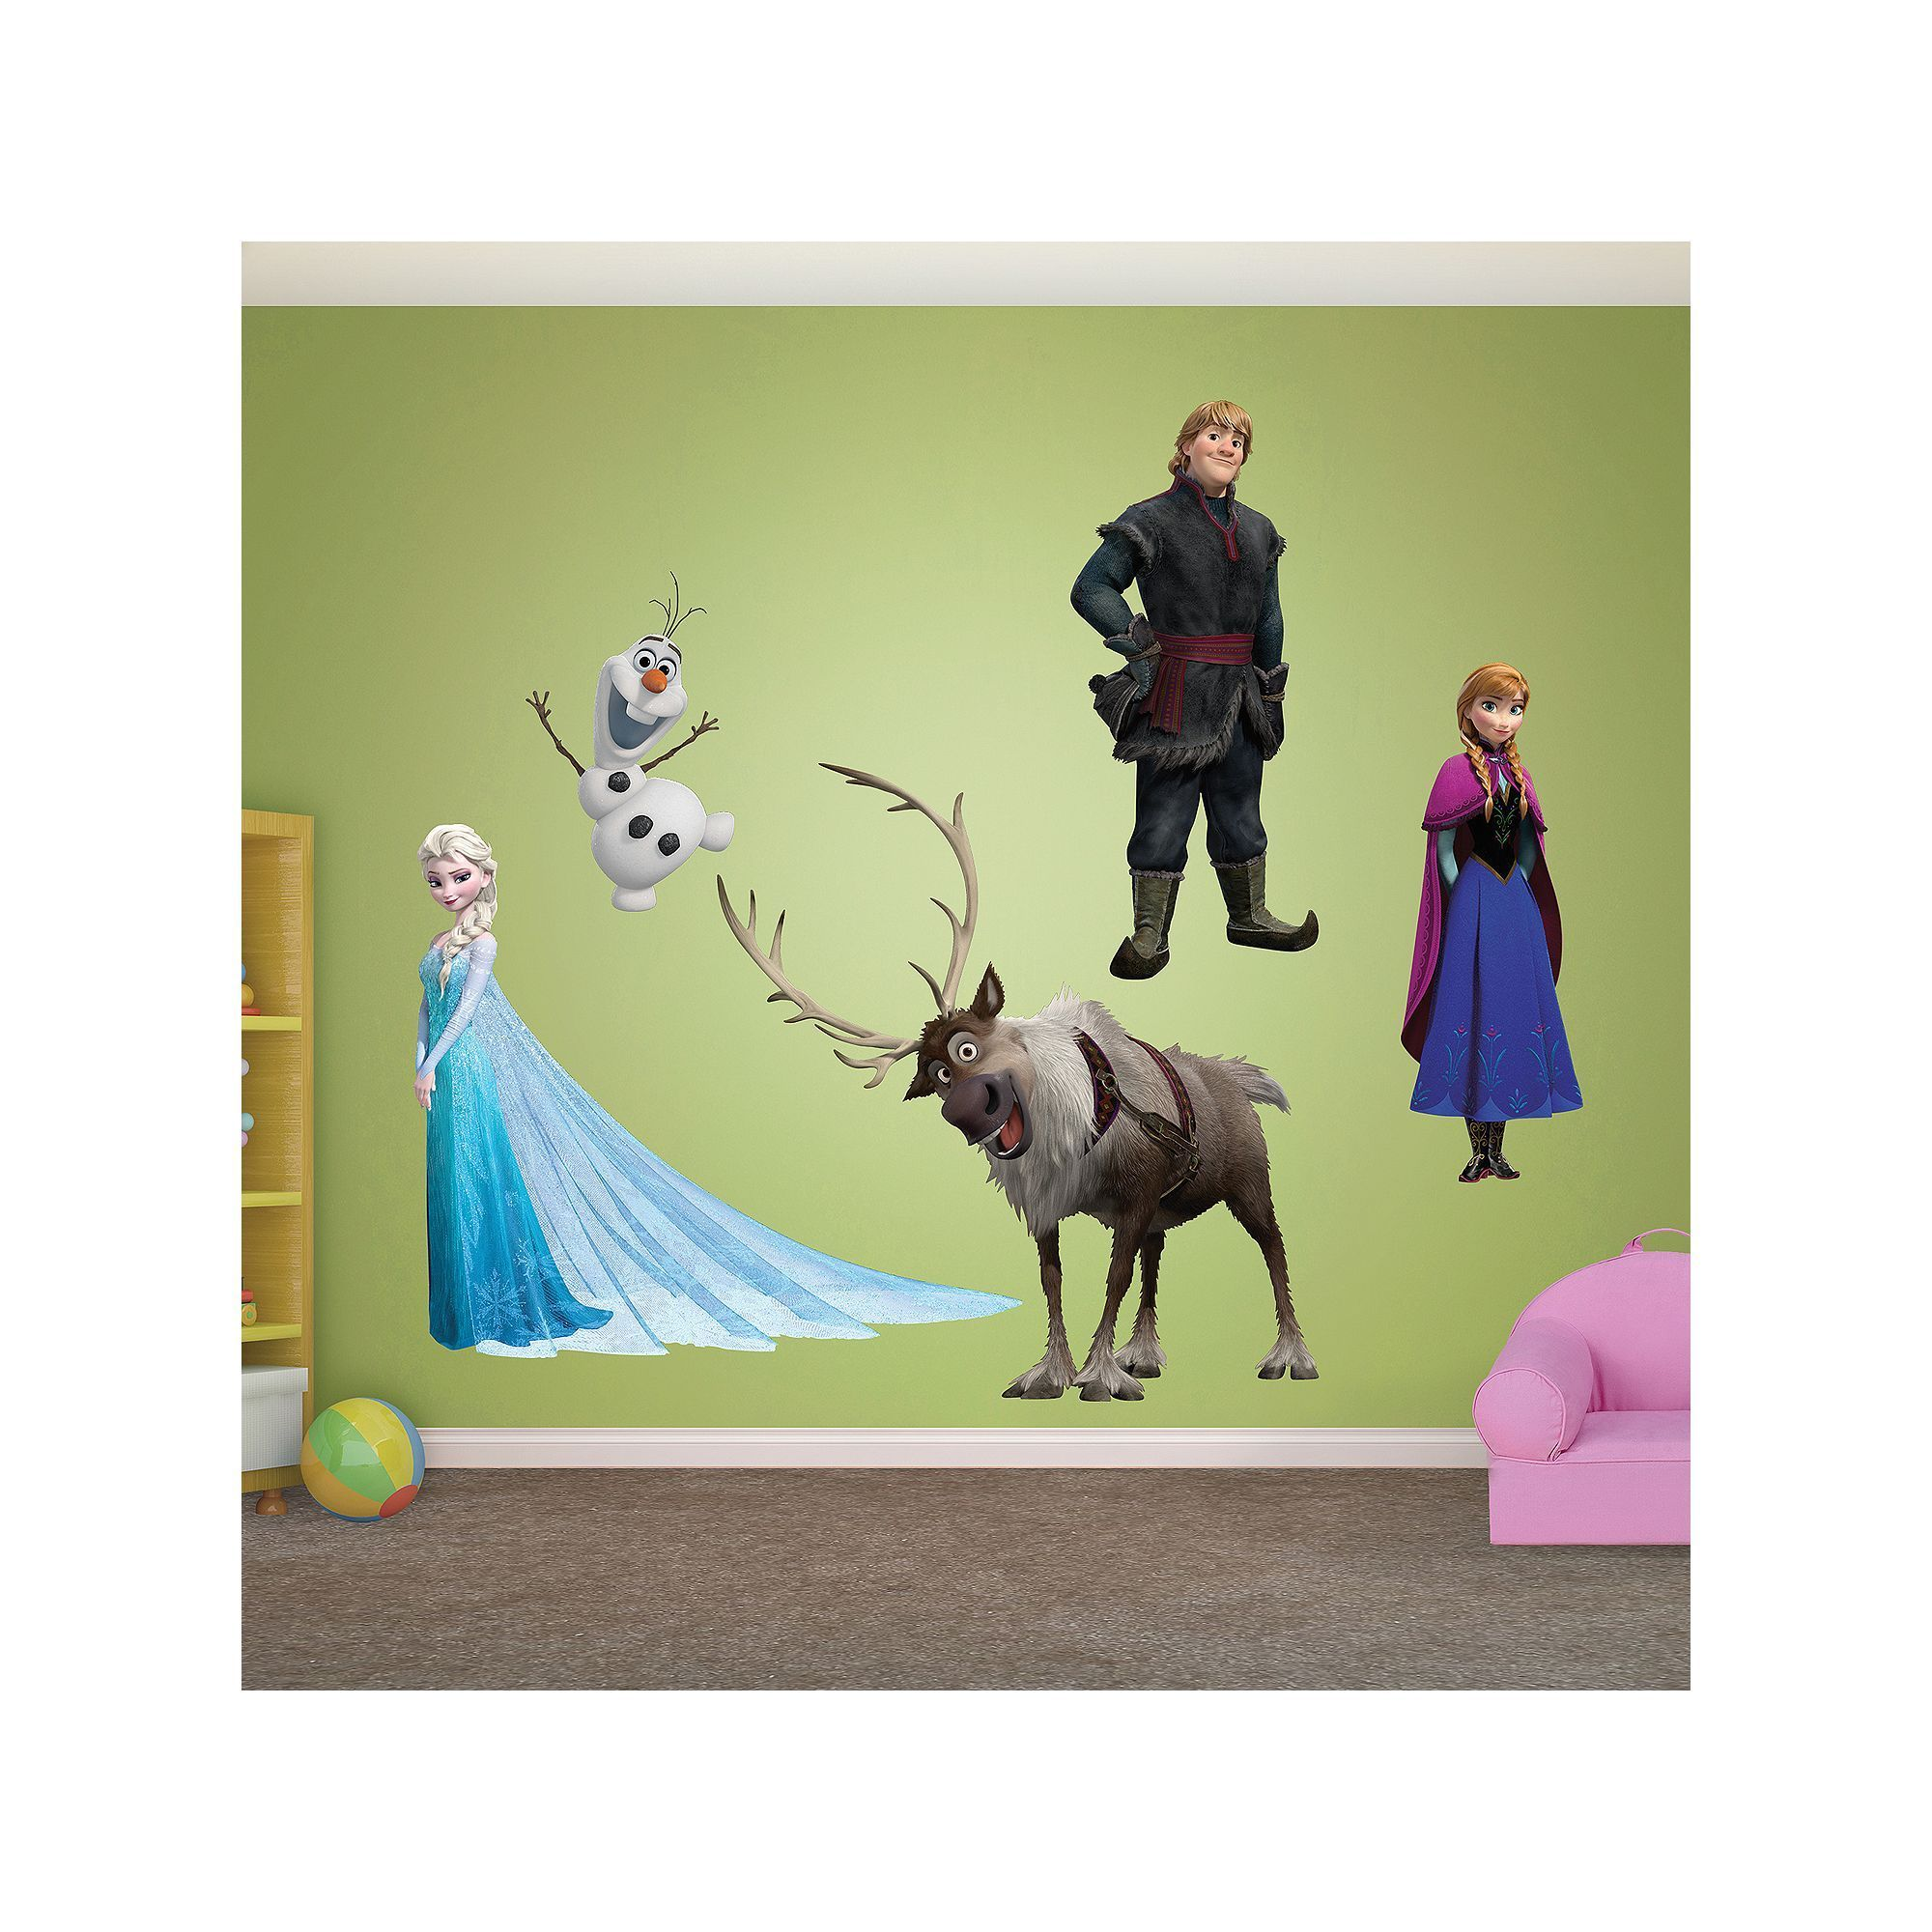 Disney Frozen Character Wall Decals by Fathead, Multicolor | Disney ...